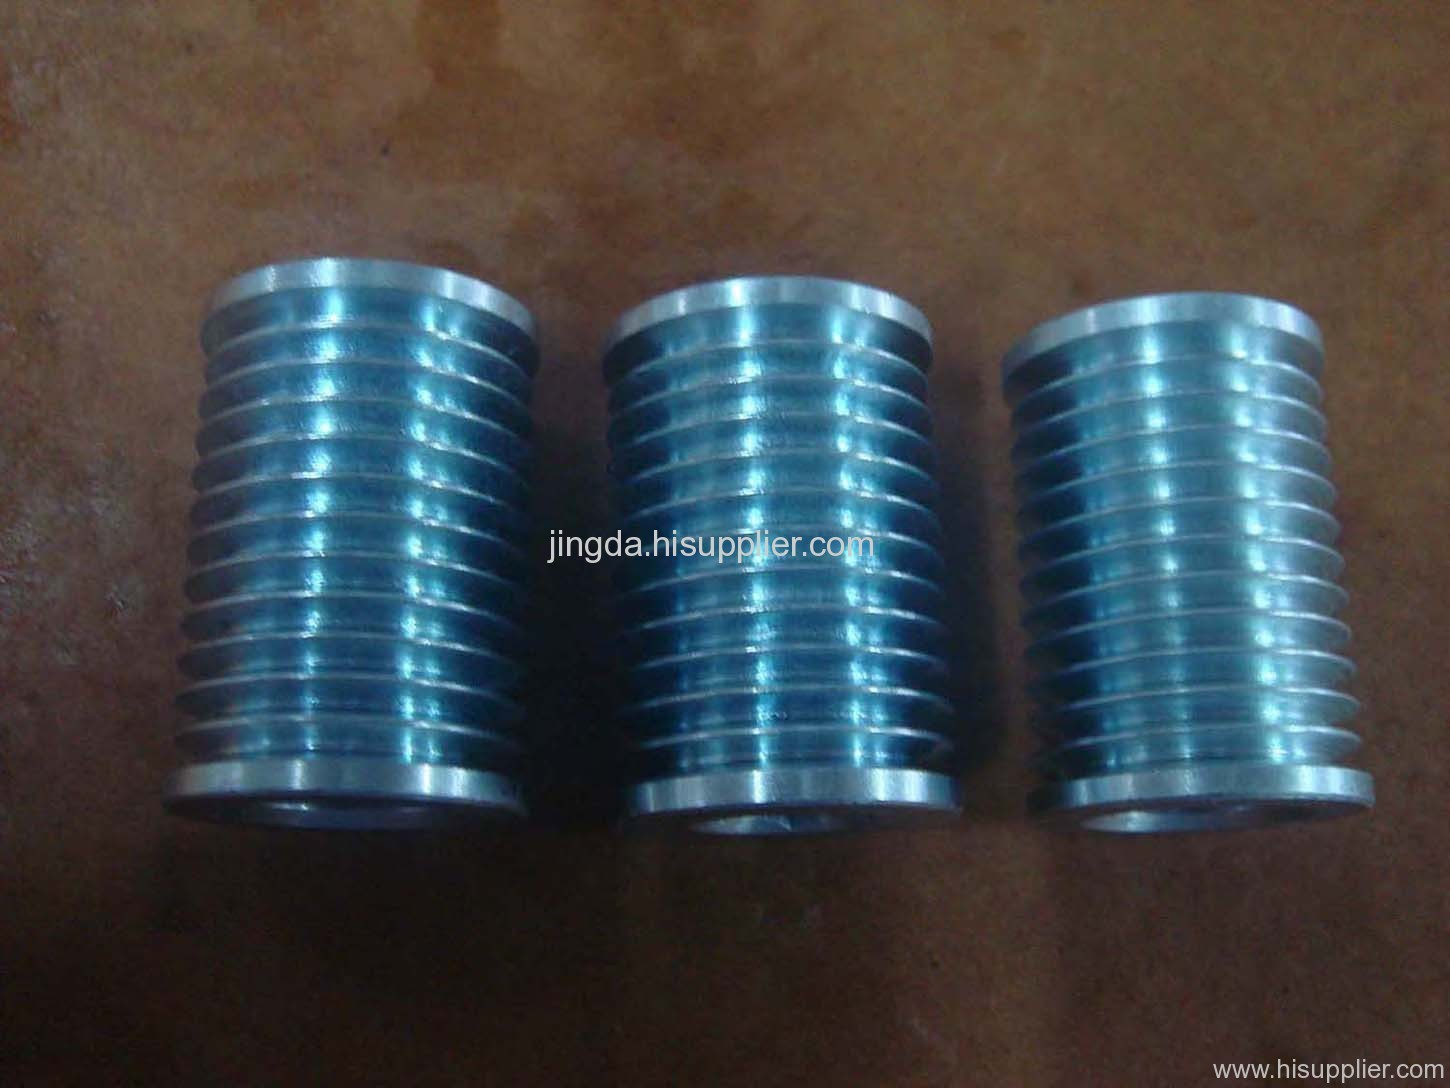 12L14 customized V-belt pulley for DC or AC electrical motor